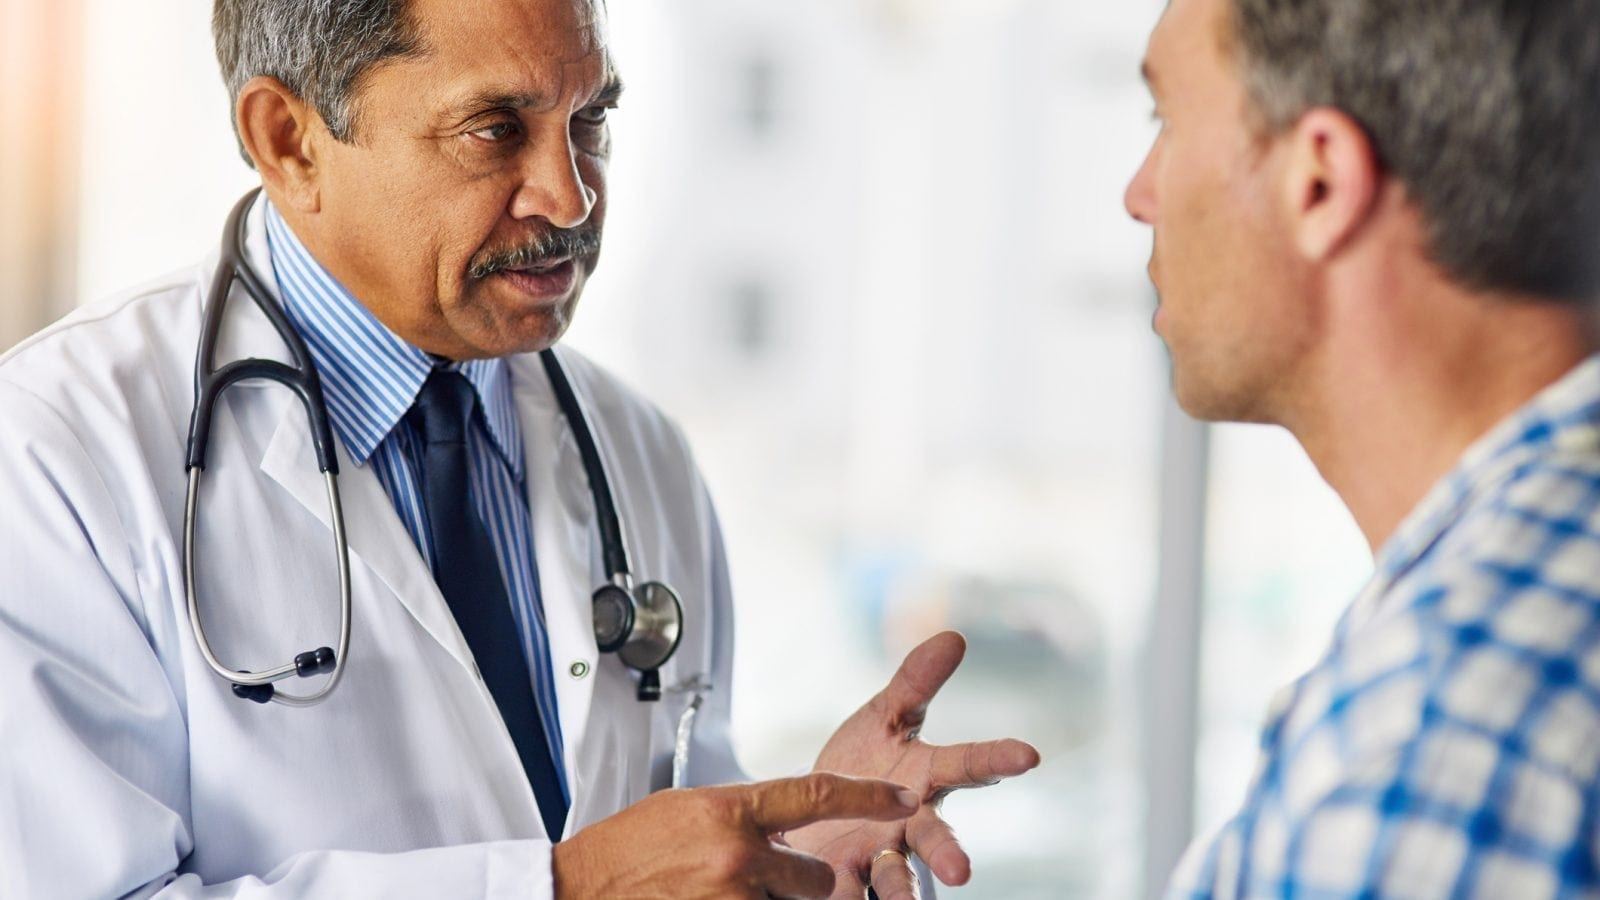 Doctor Giving Advice Stock Photo